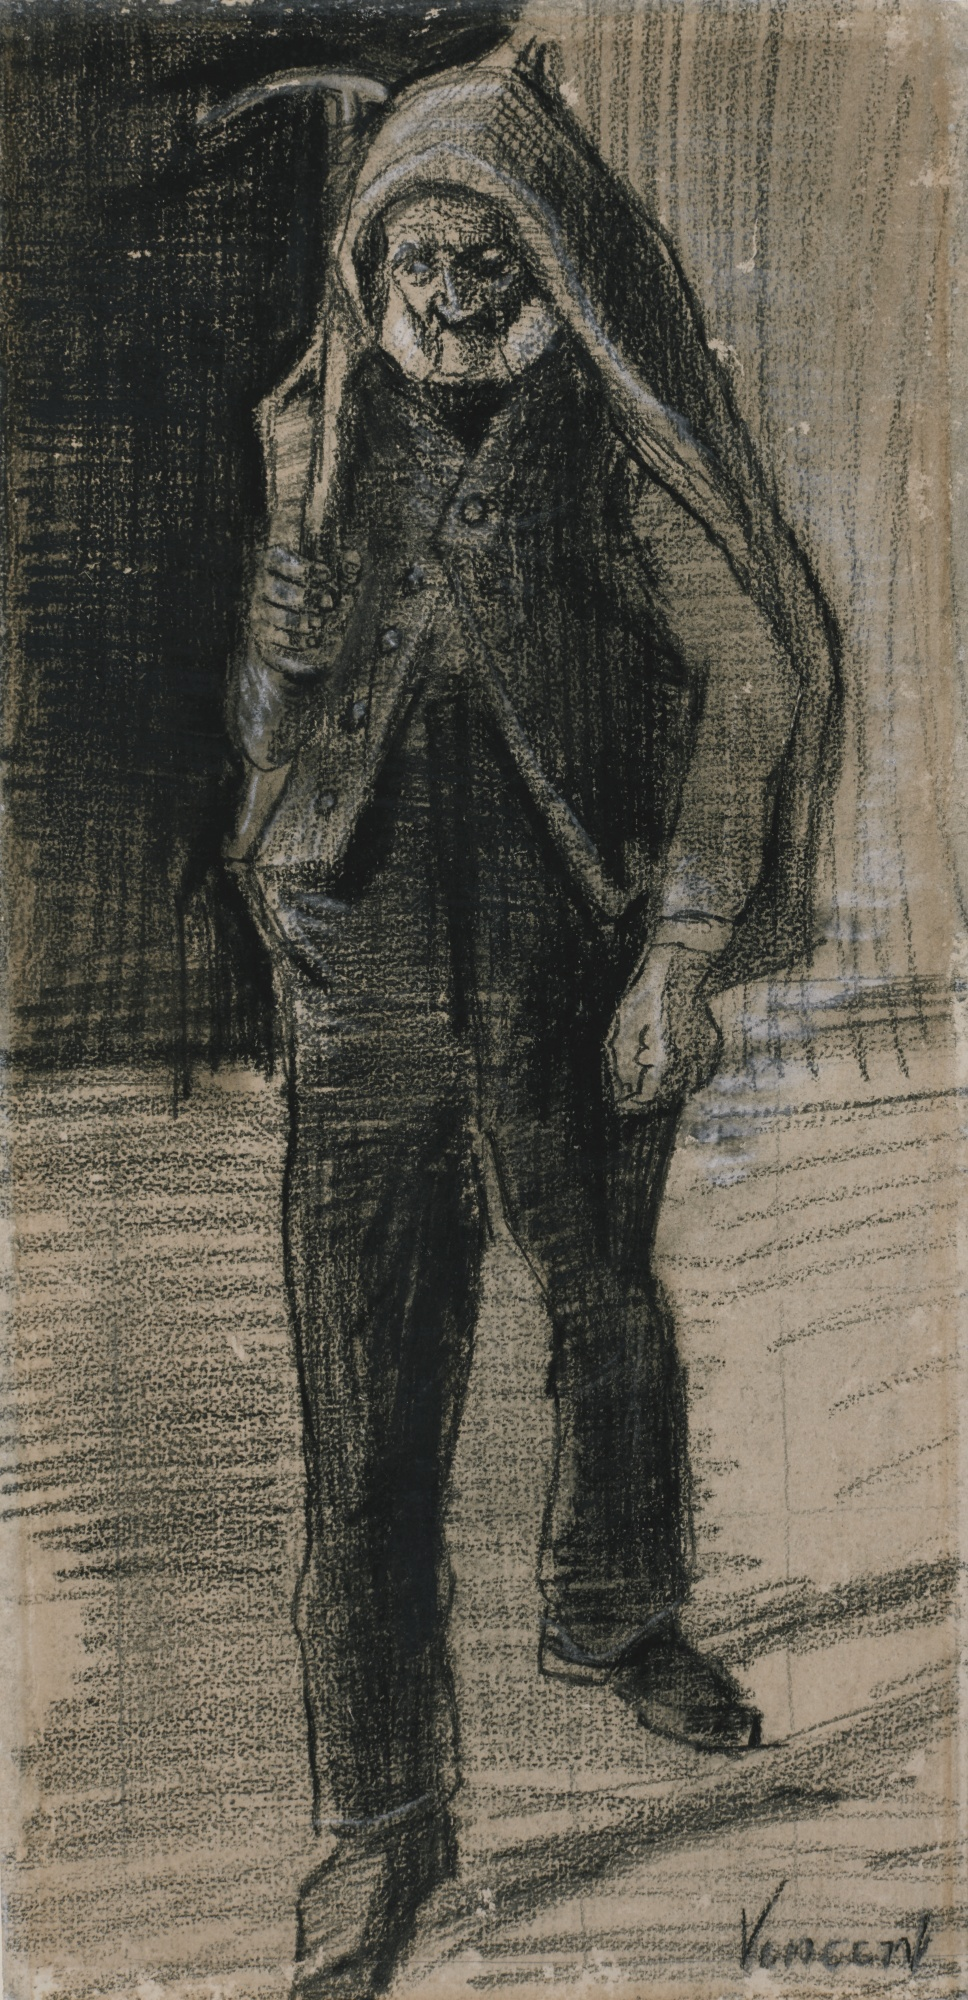 Vincent van Gogh-Man With An Axe On His Shoulder-1882